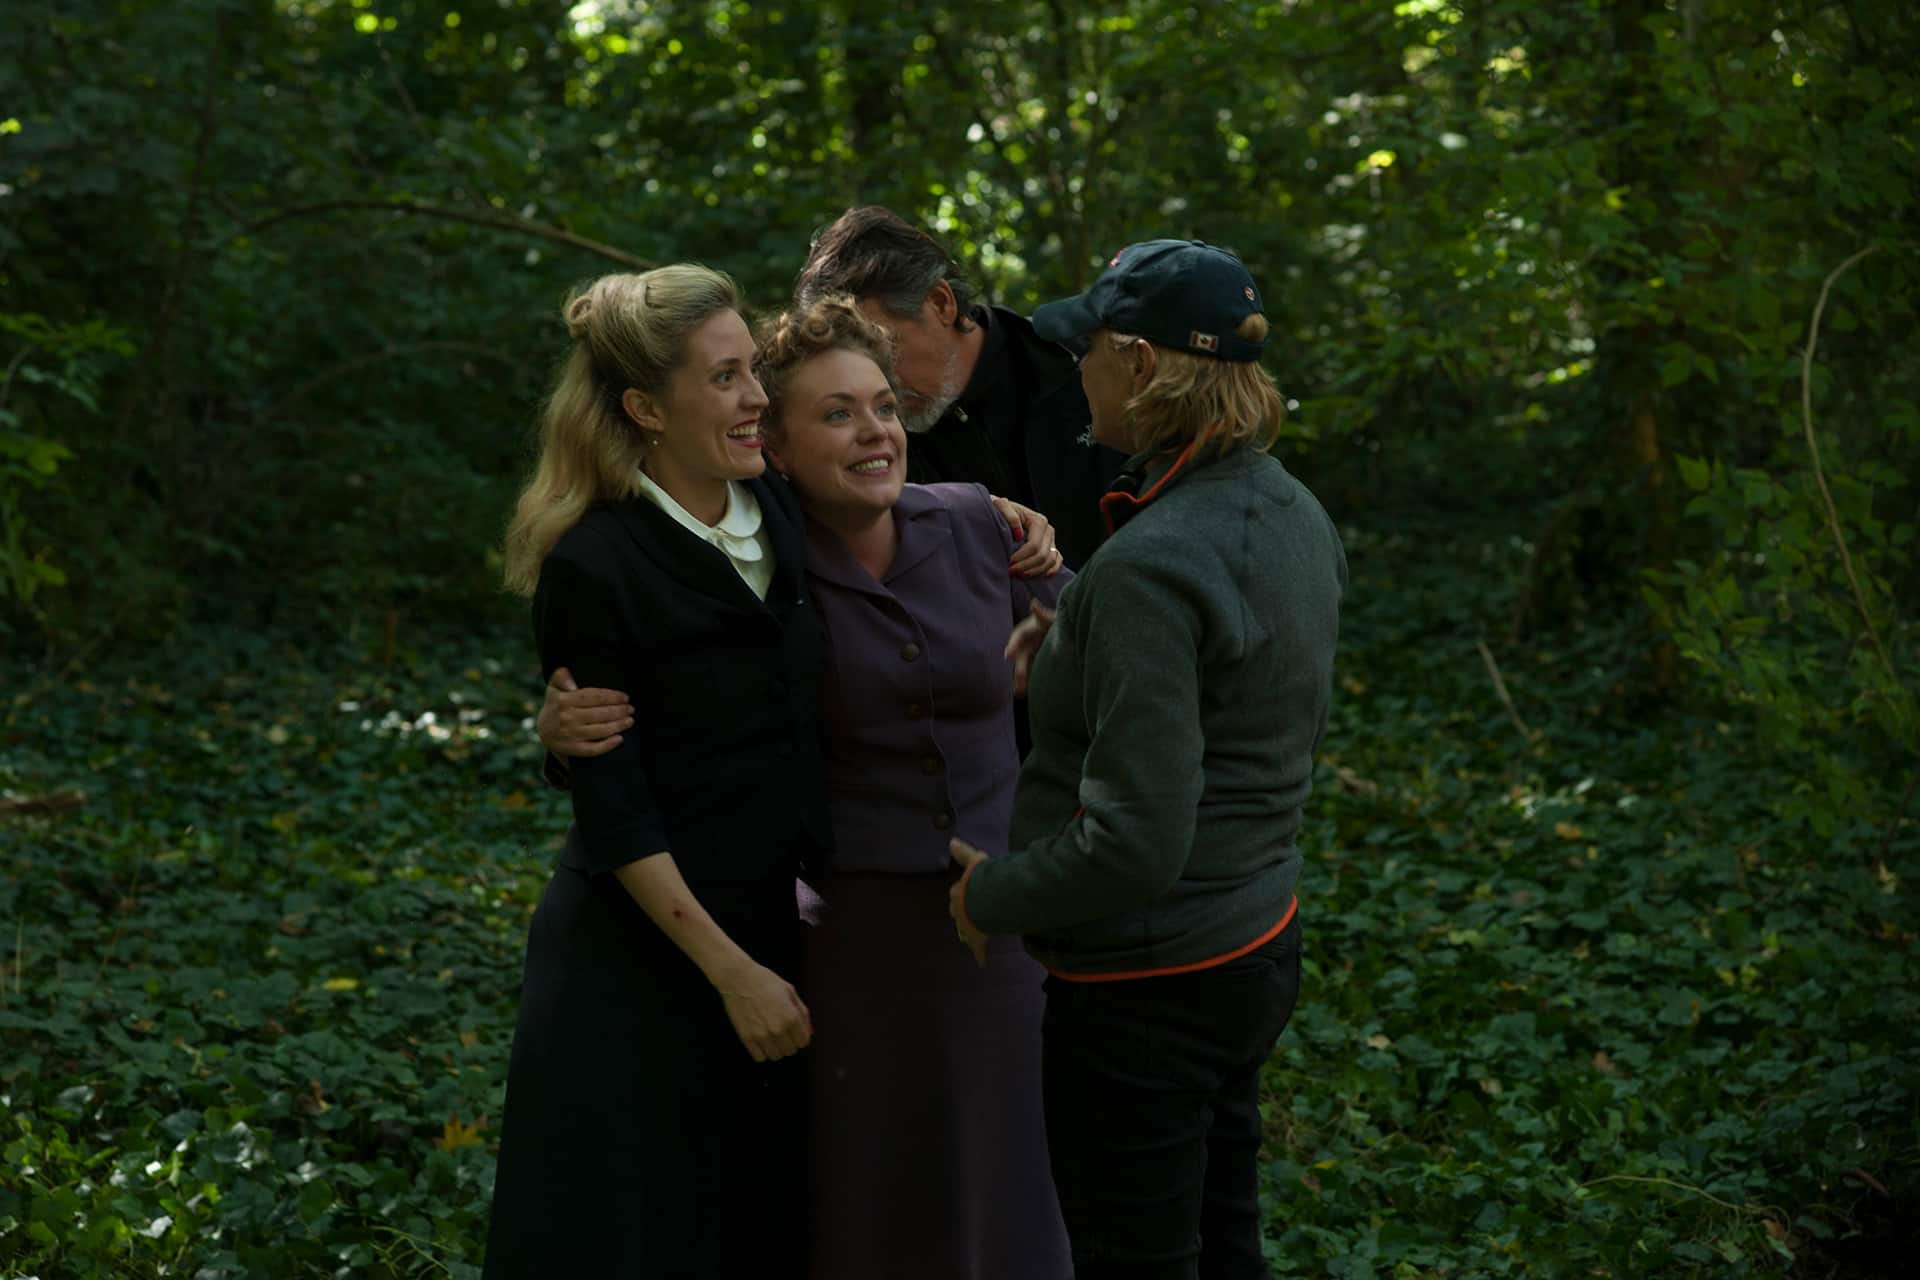 Behind the scenes on the set of X Company Season 3 with Evelyne Brochu (Aurora), Madeleine Knight (Heidi) and Director Amanda Tapping.